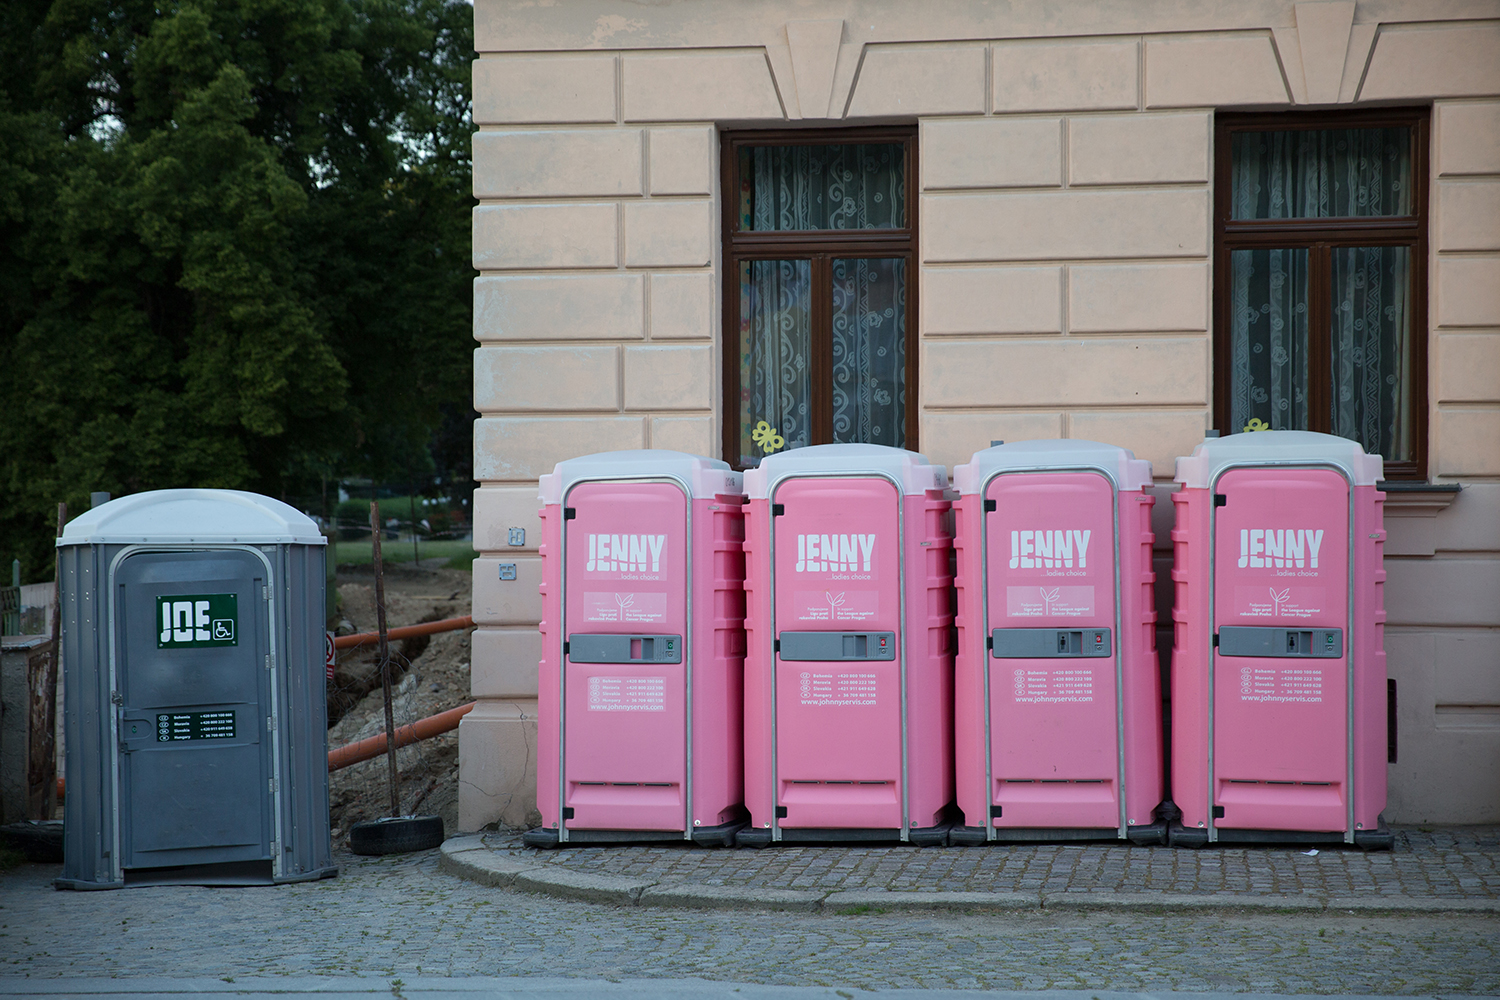 A documentary photograph of men and woman's portable toilets in cesky krumlov, czech republic